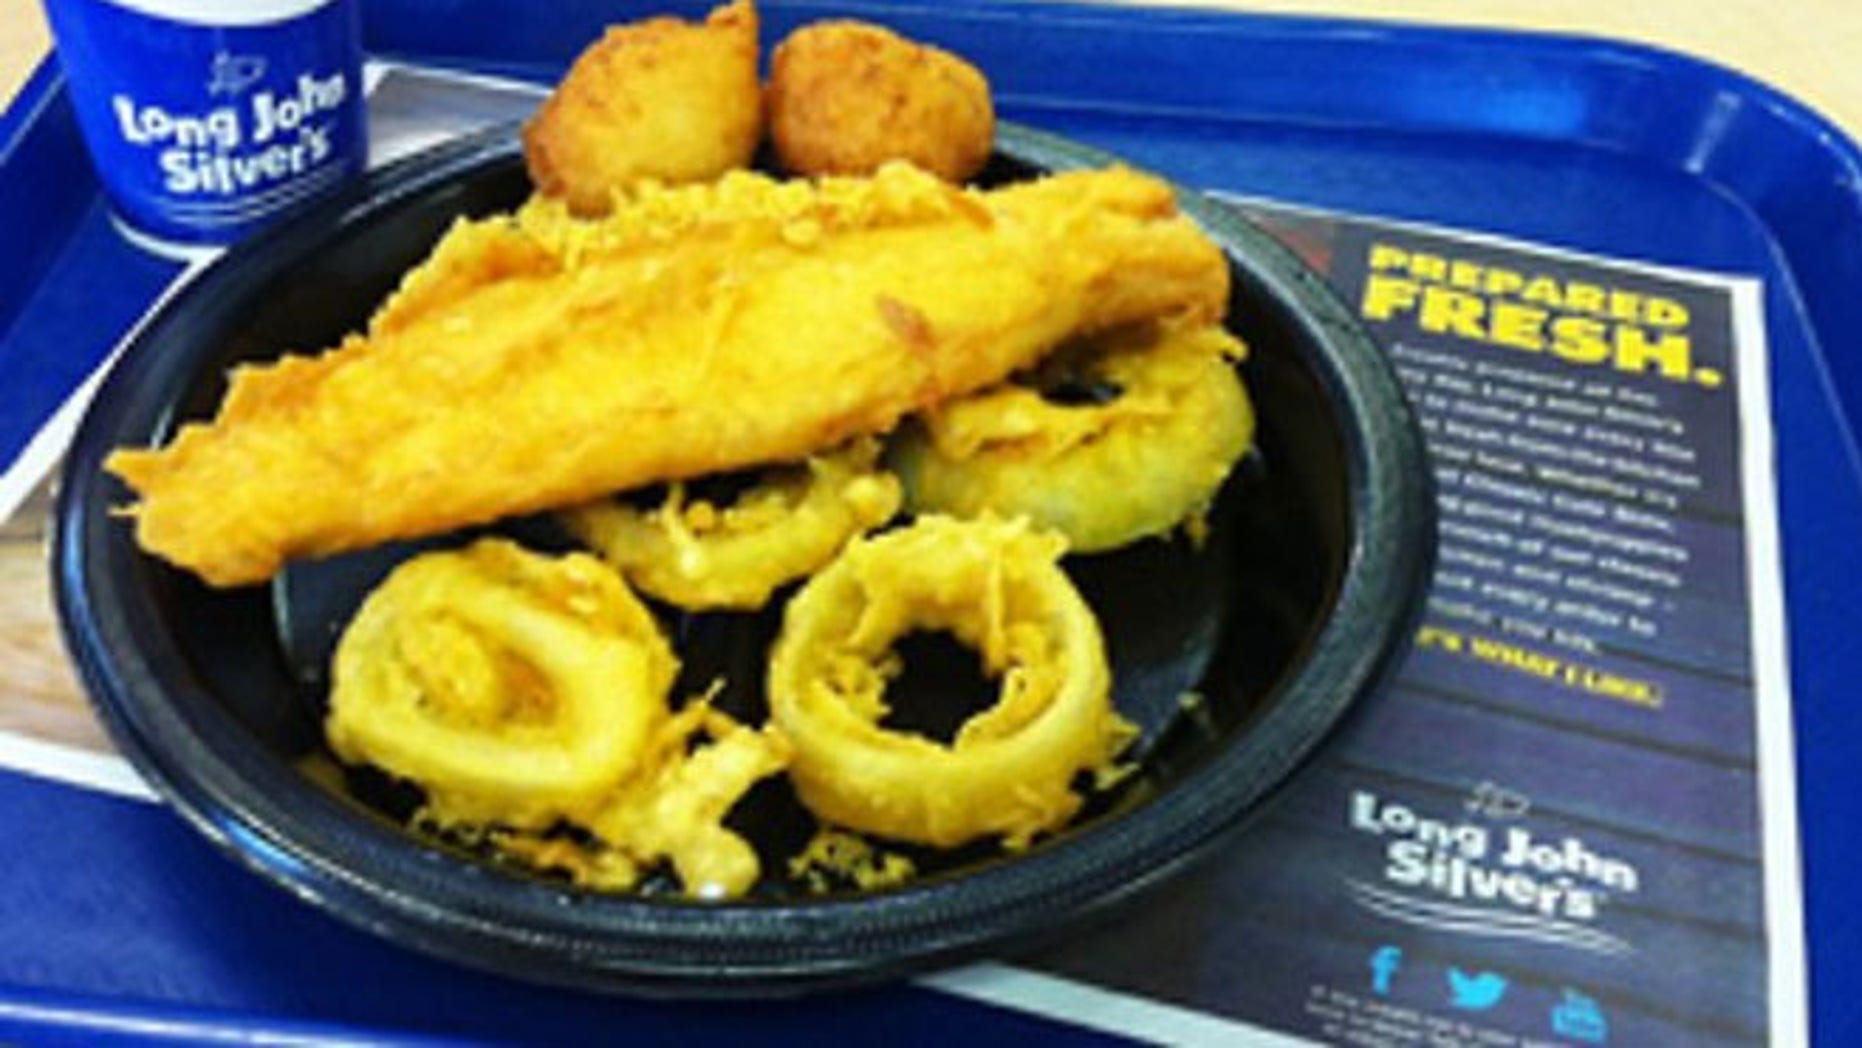 Long John Silver's Big Catch contains 33 grams of trans fat and 3700 milligrams of sodium, said the Center for Science in the Public Interest.